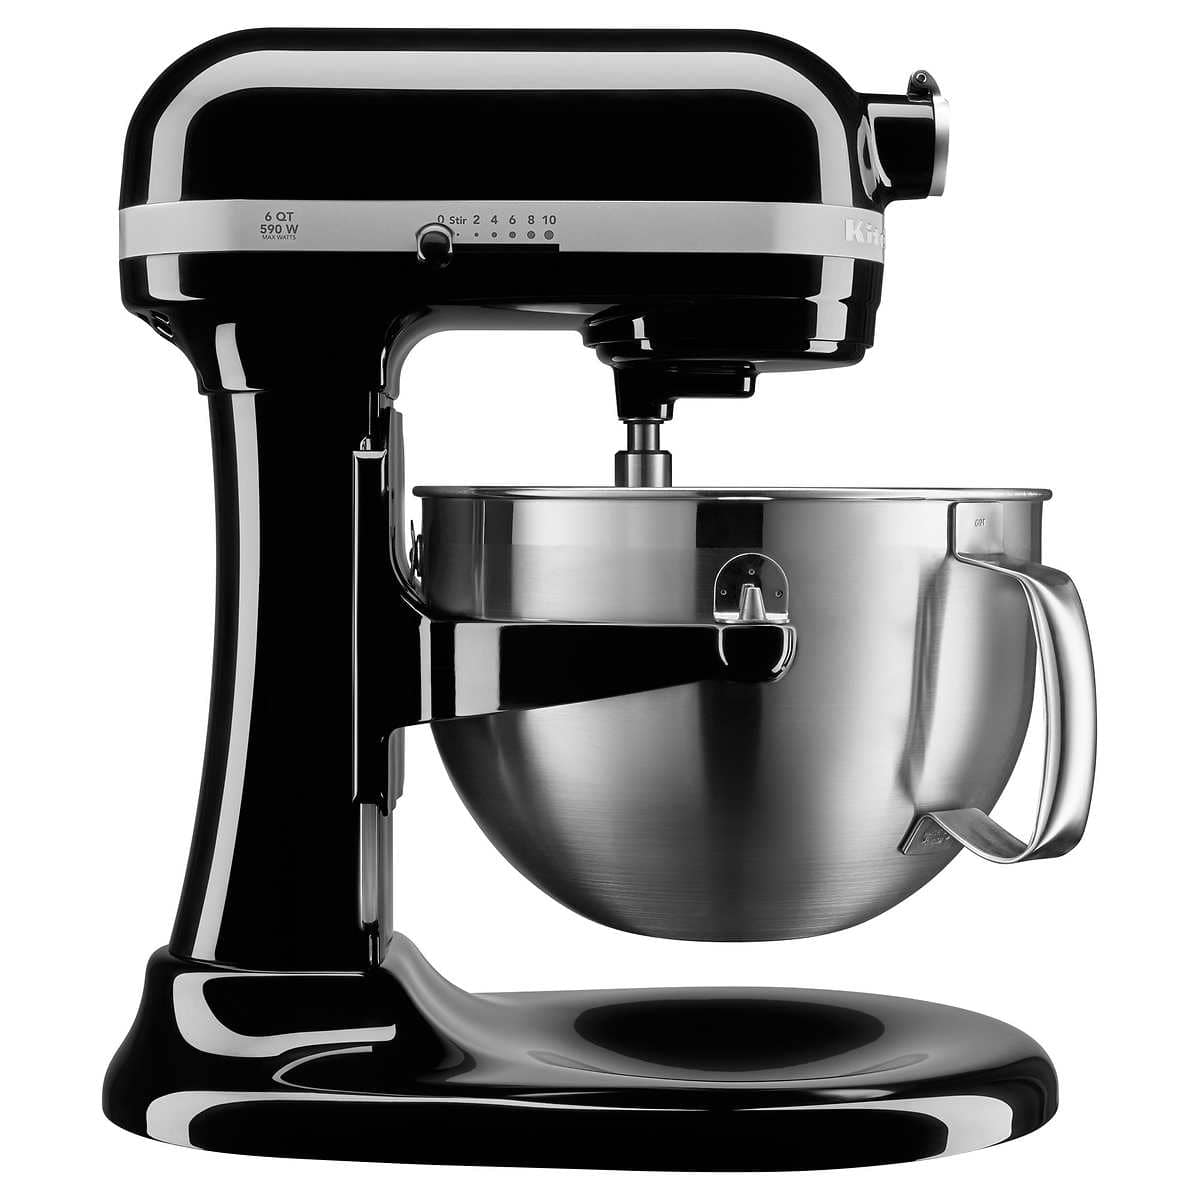 Kitchenaid Black Friday 2016 Amazon: Black Friday Deals 2017 Kitchenaid Mixer